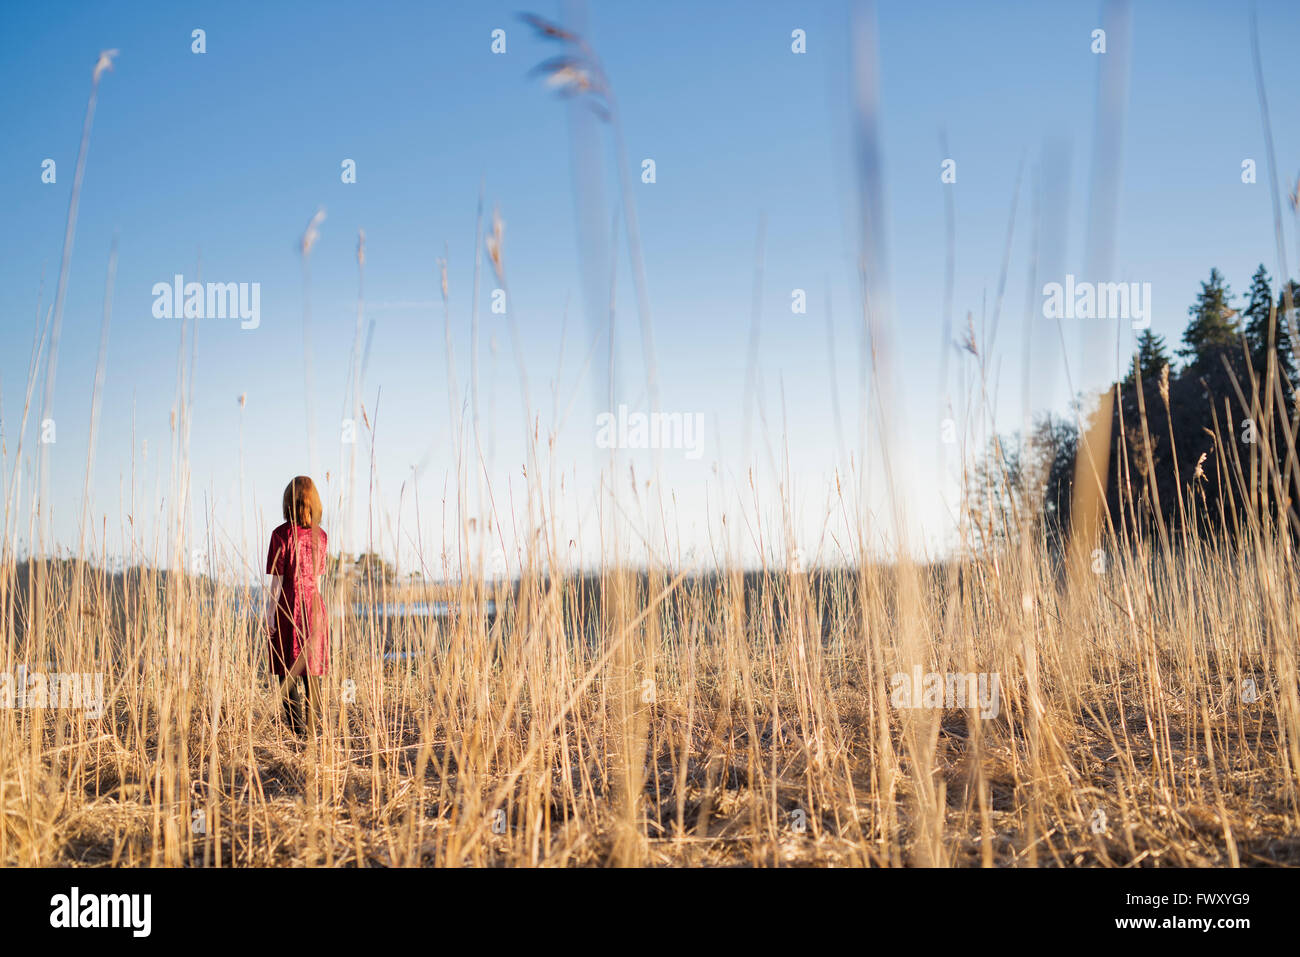 Finland, Varsinais-Suomi, Young woman standing in field in sunlight Stock Photo